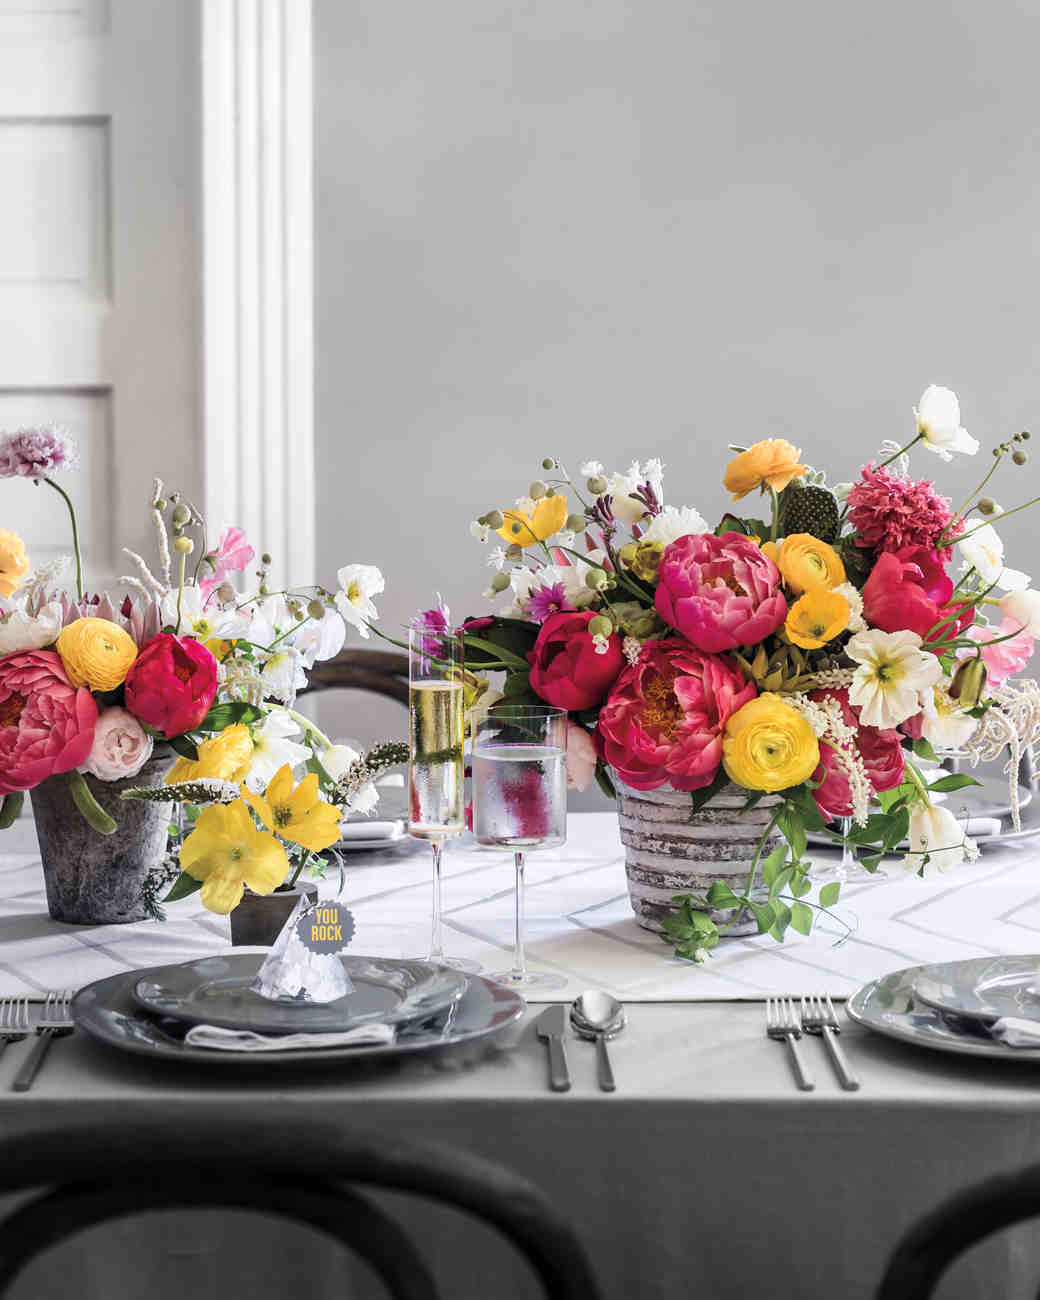 Flower Table Arrangements For Weddings: Spring Wedding Flower Ideas From The Industry's Best